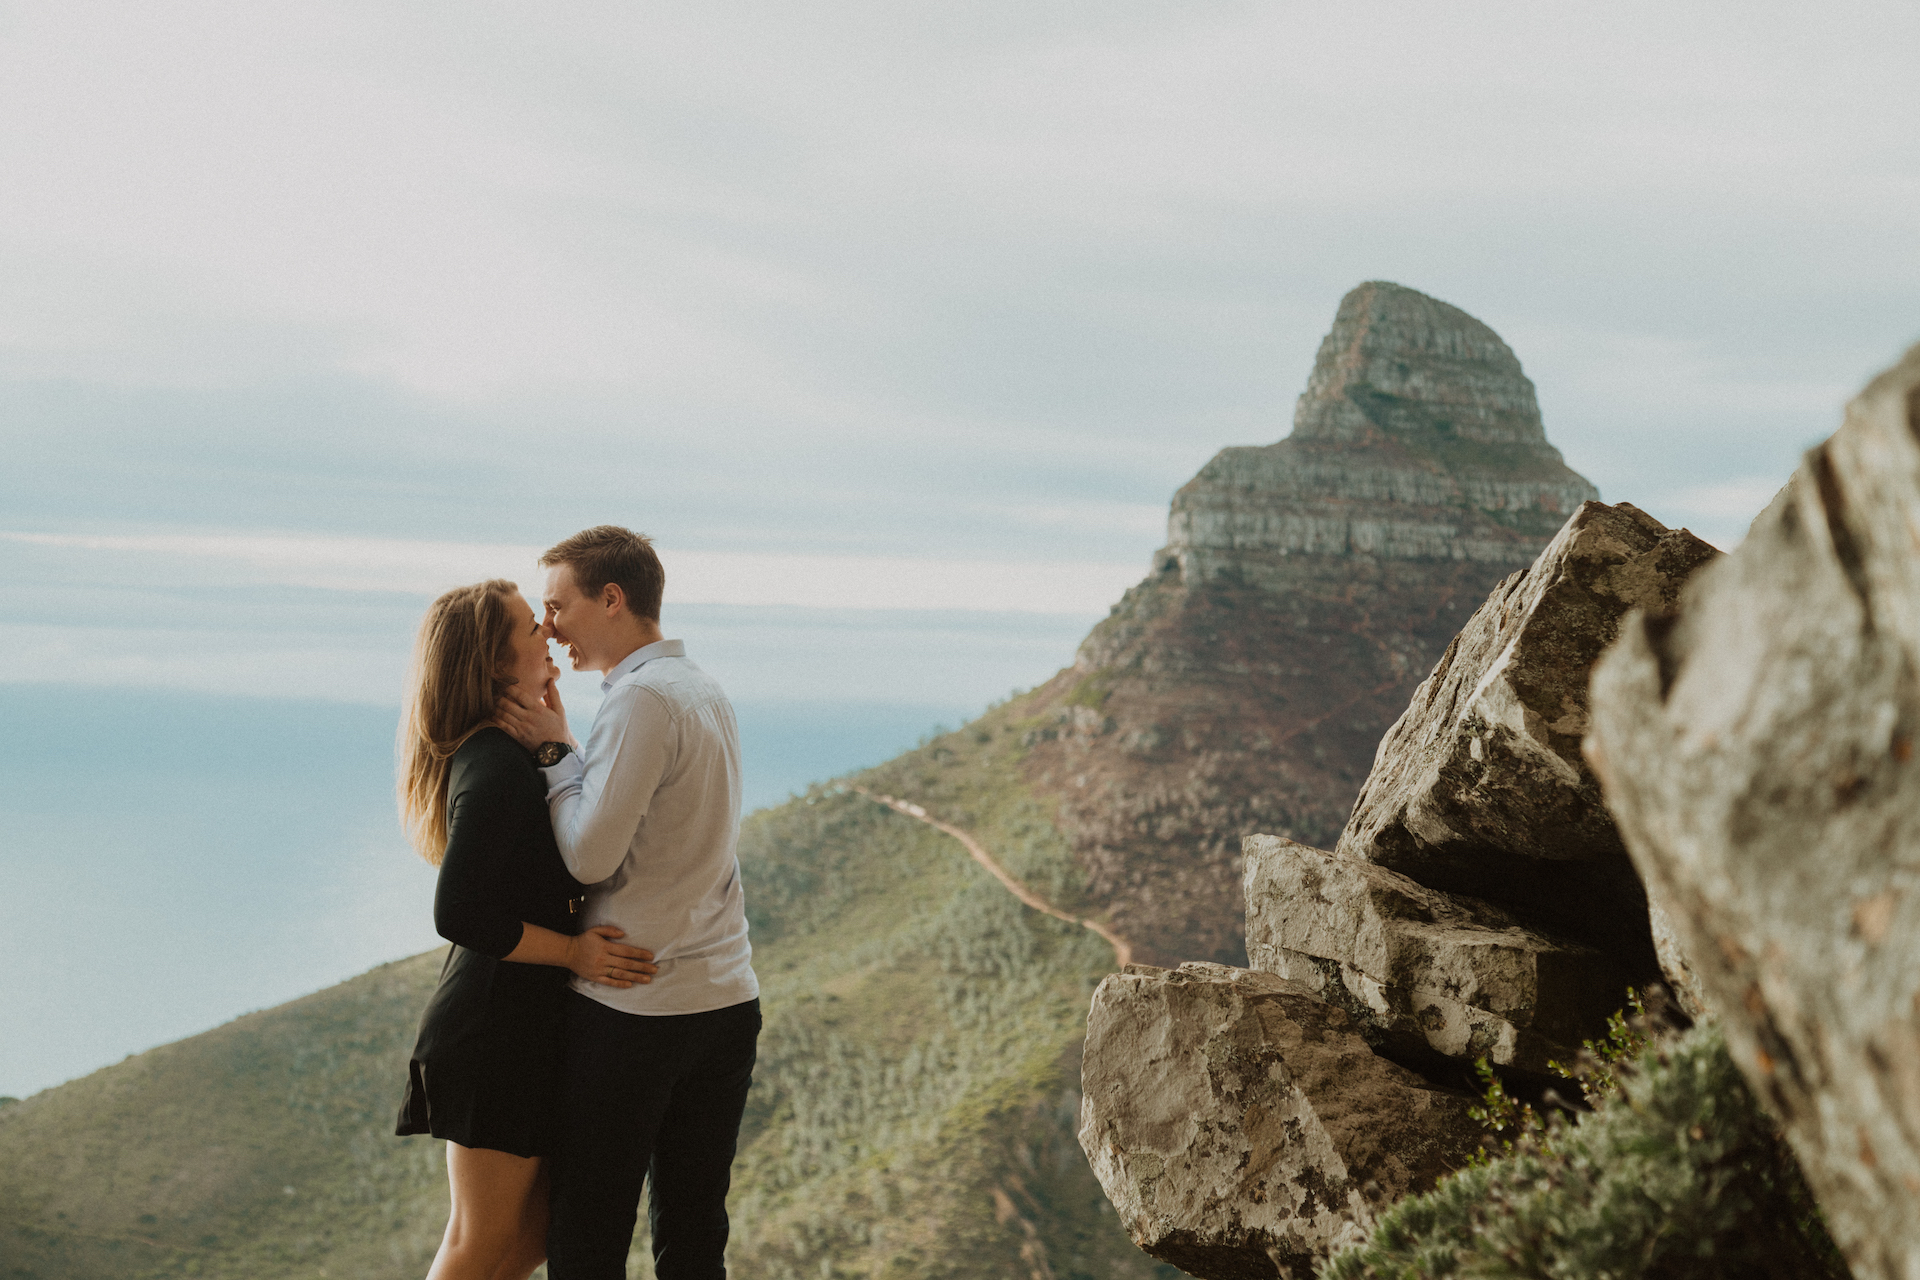 Lucas & Rabea - Cape Town - Bianca Asher Photography-48.jpg